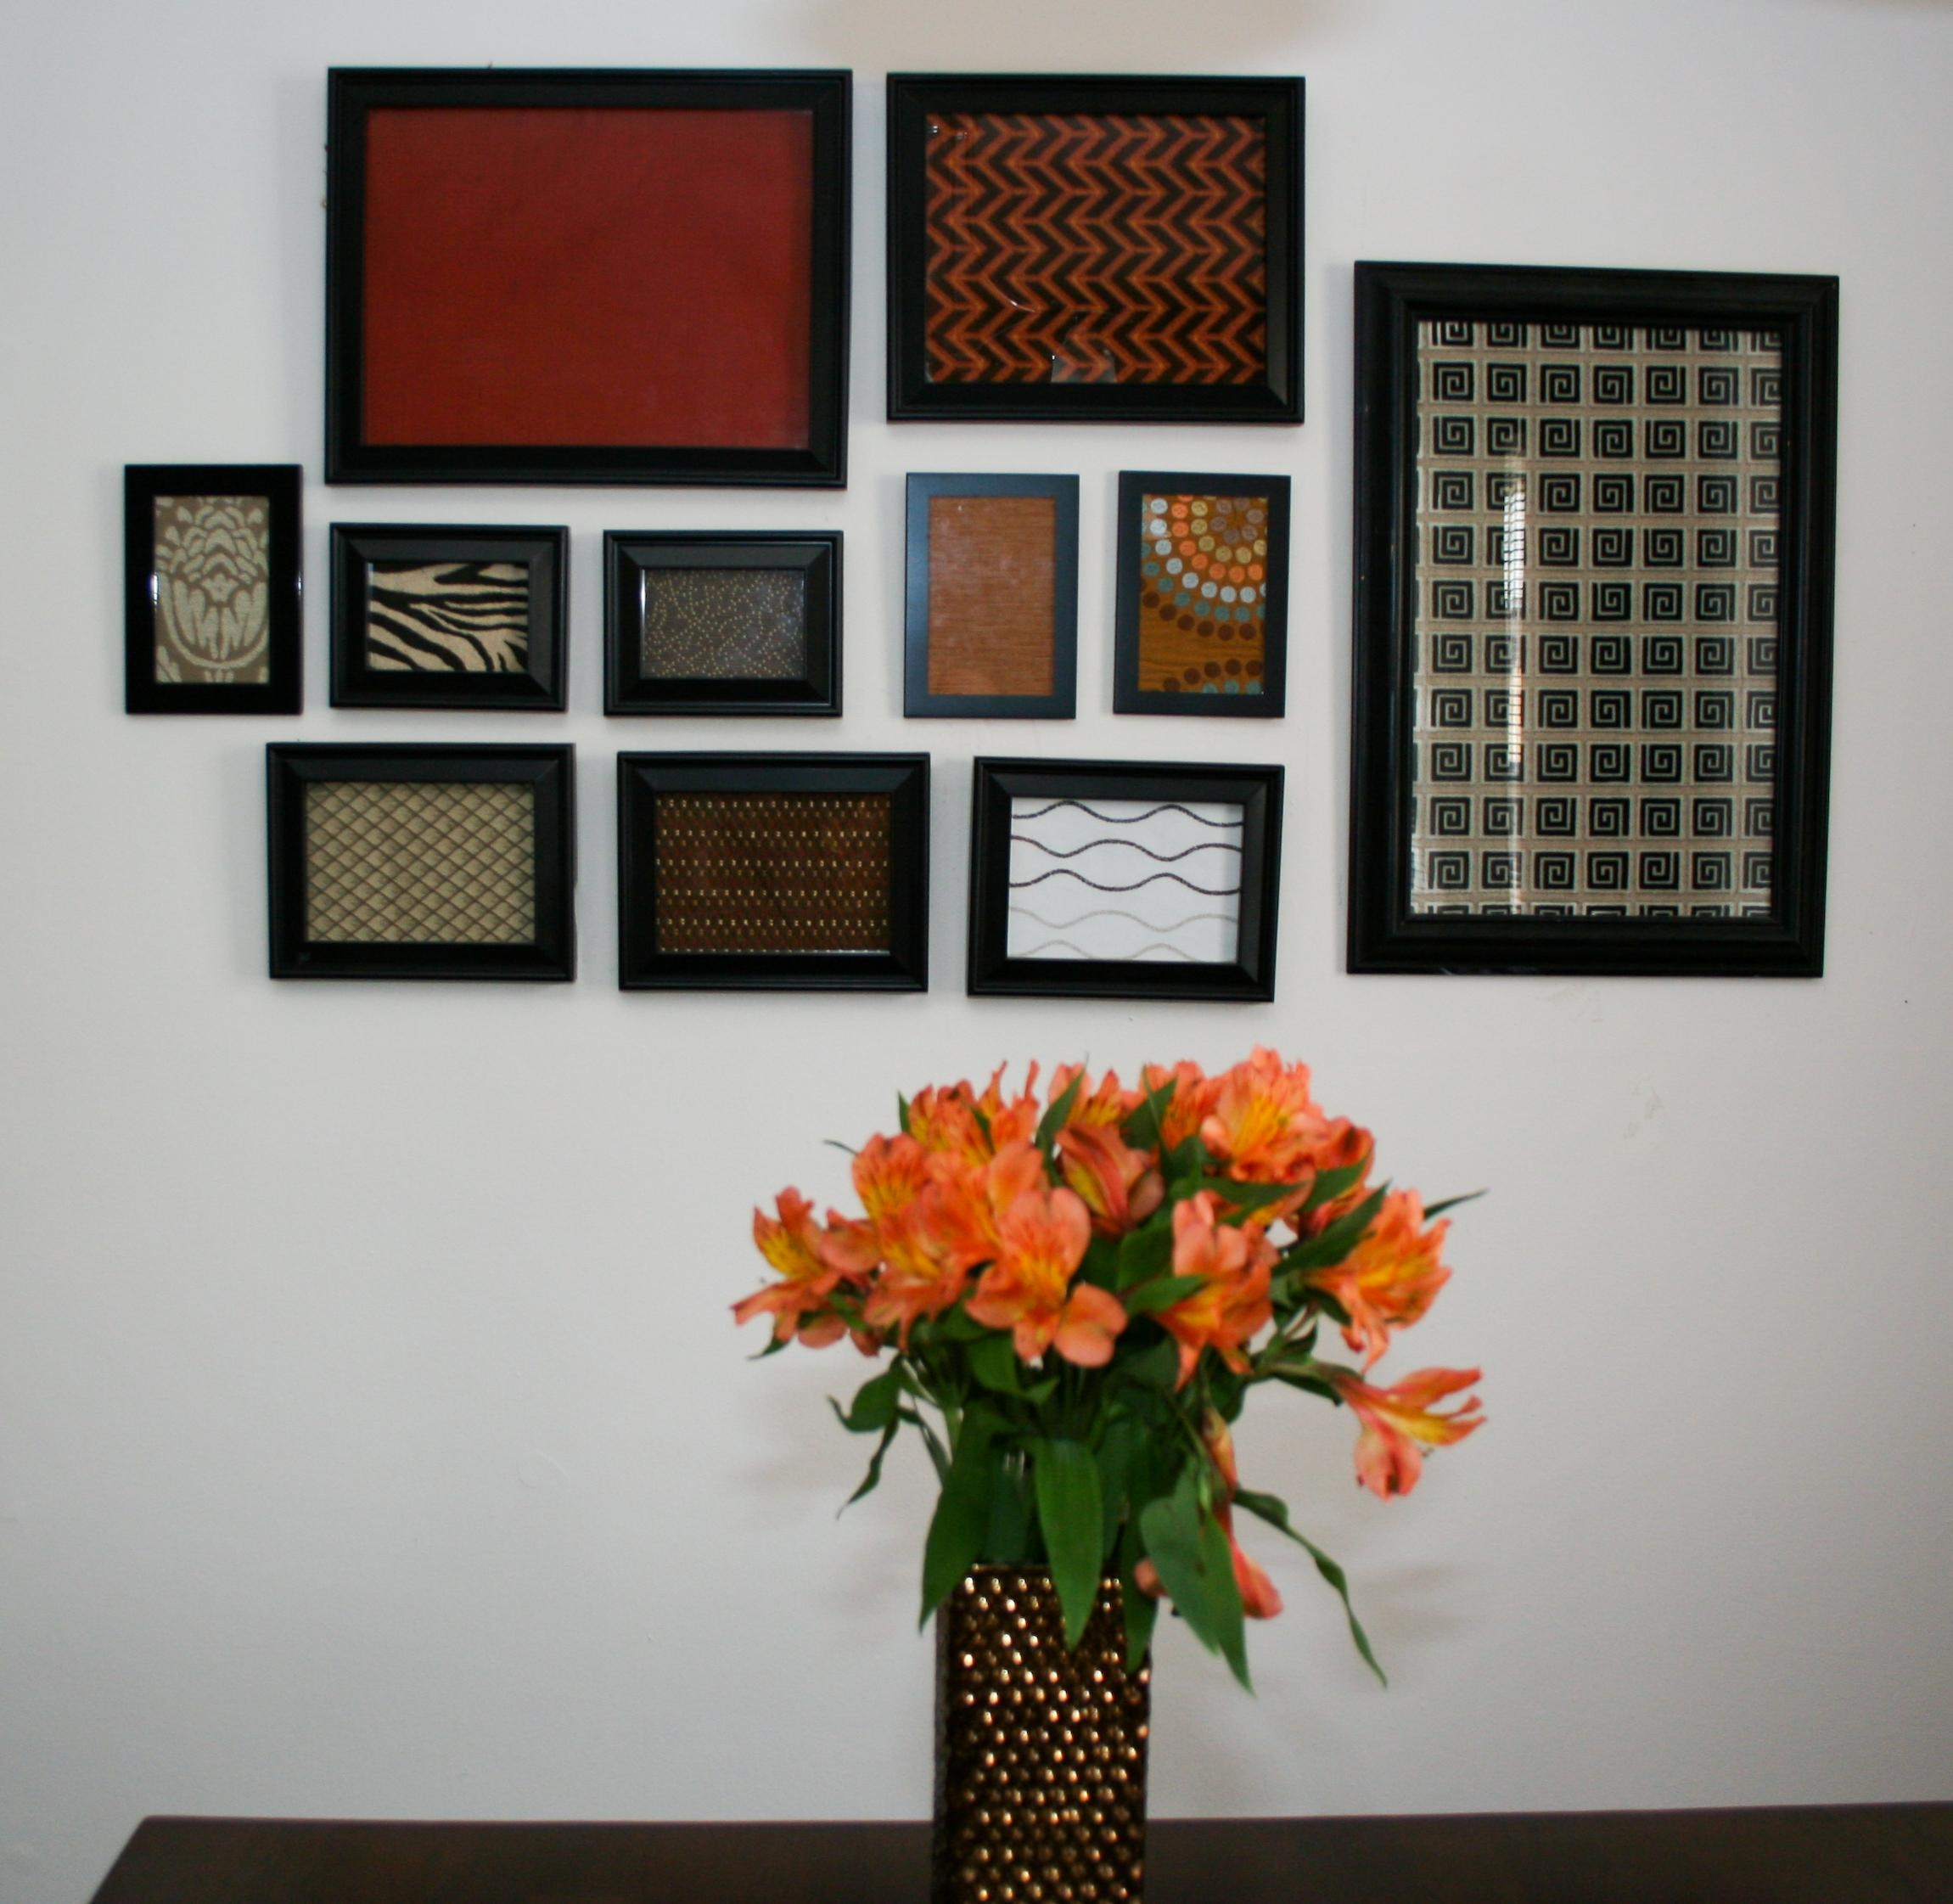 Framed Fabric Wall Art | Regarding Framed Fabric Wall Art (View 6 of 20)